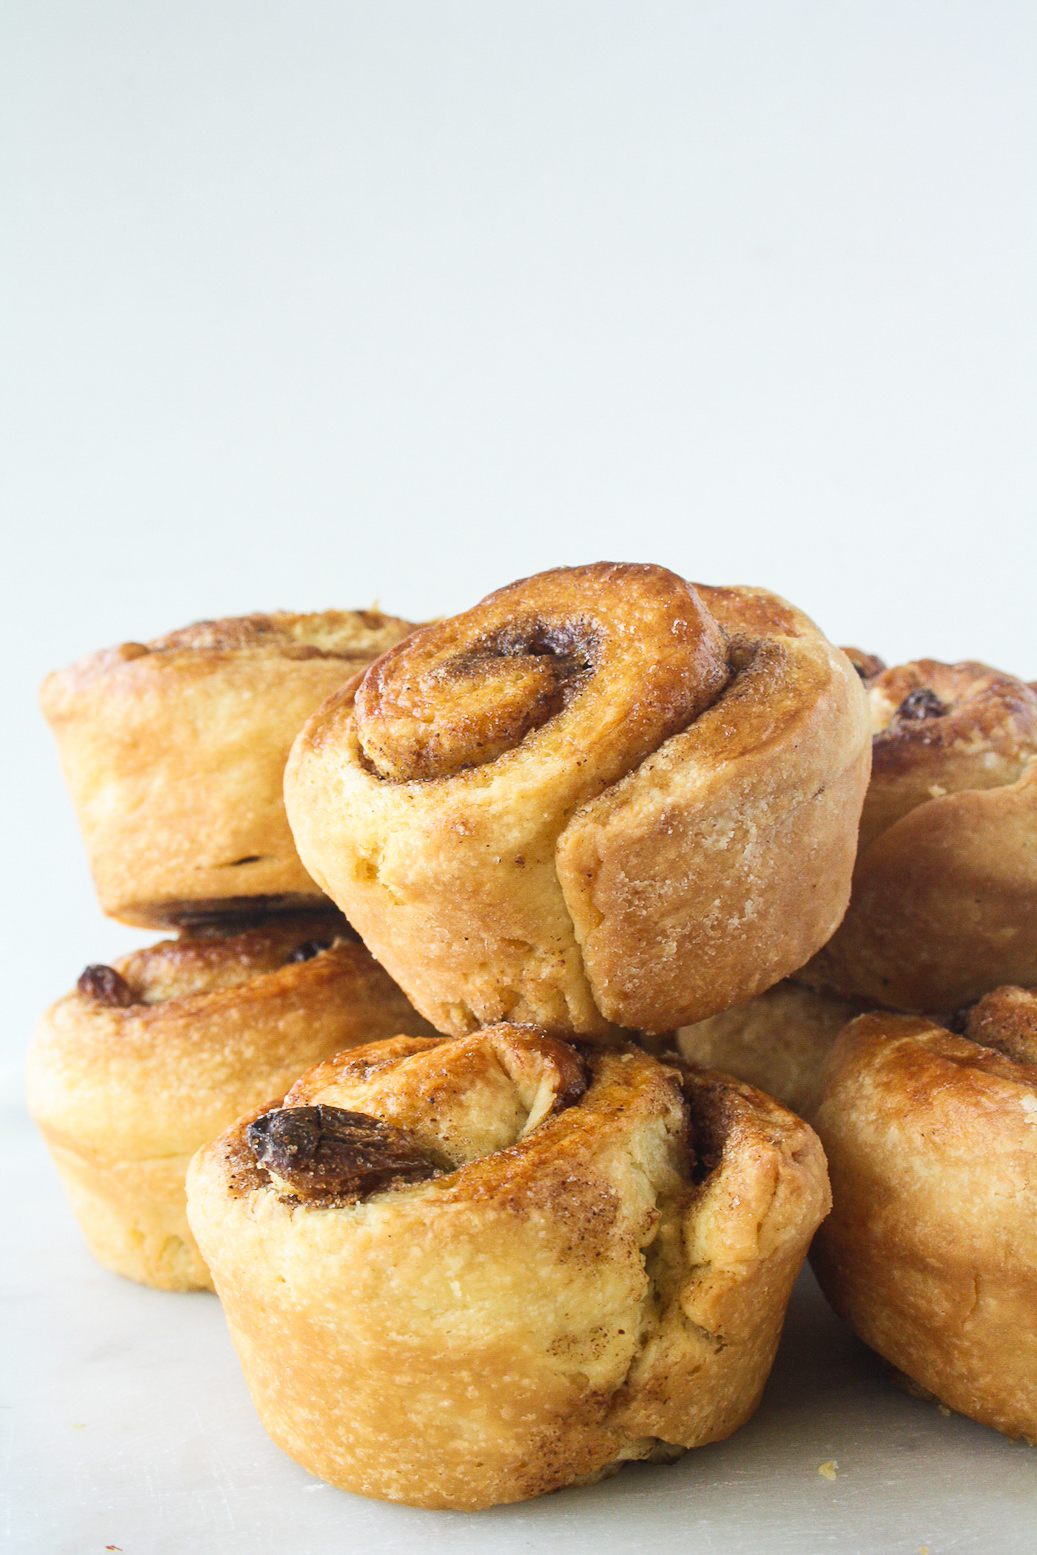 Tender, flaky, buttery danishes with cinnamon, brown sugar and raisins!